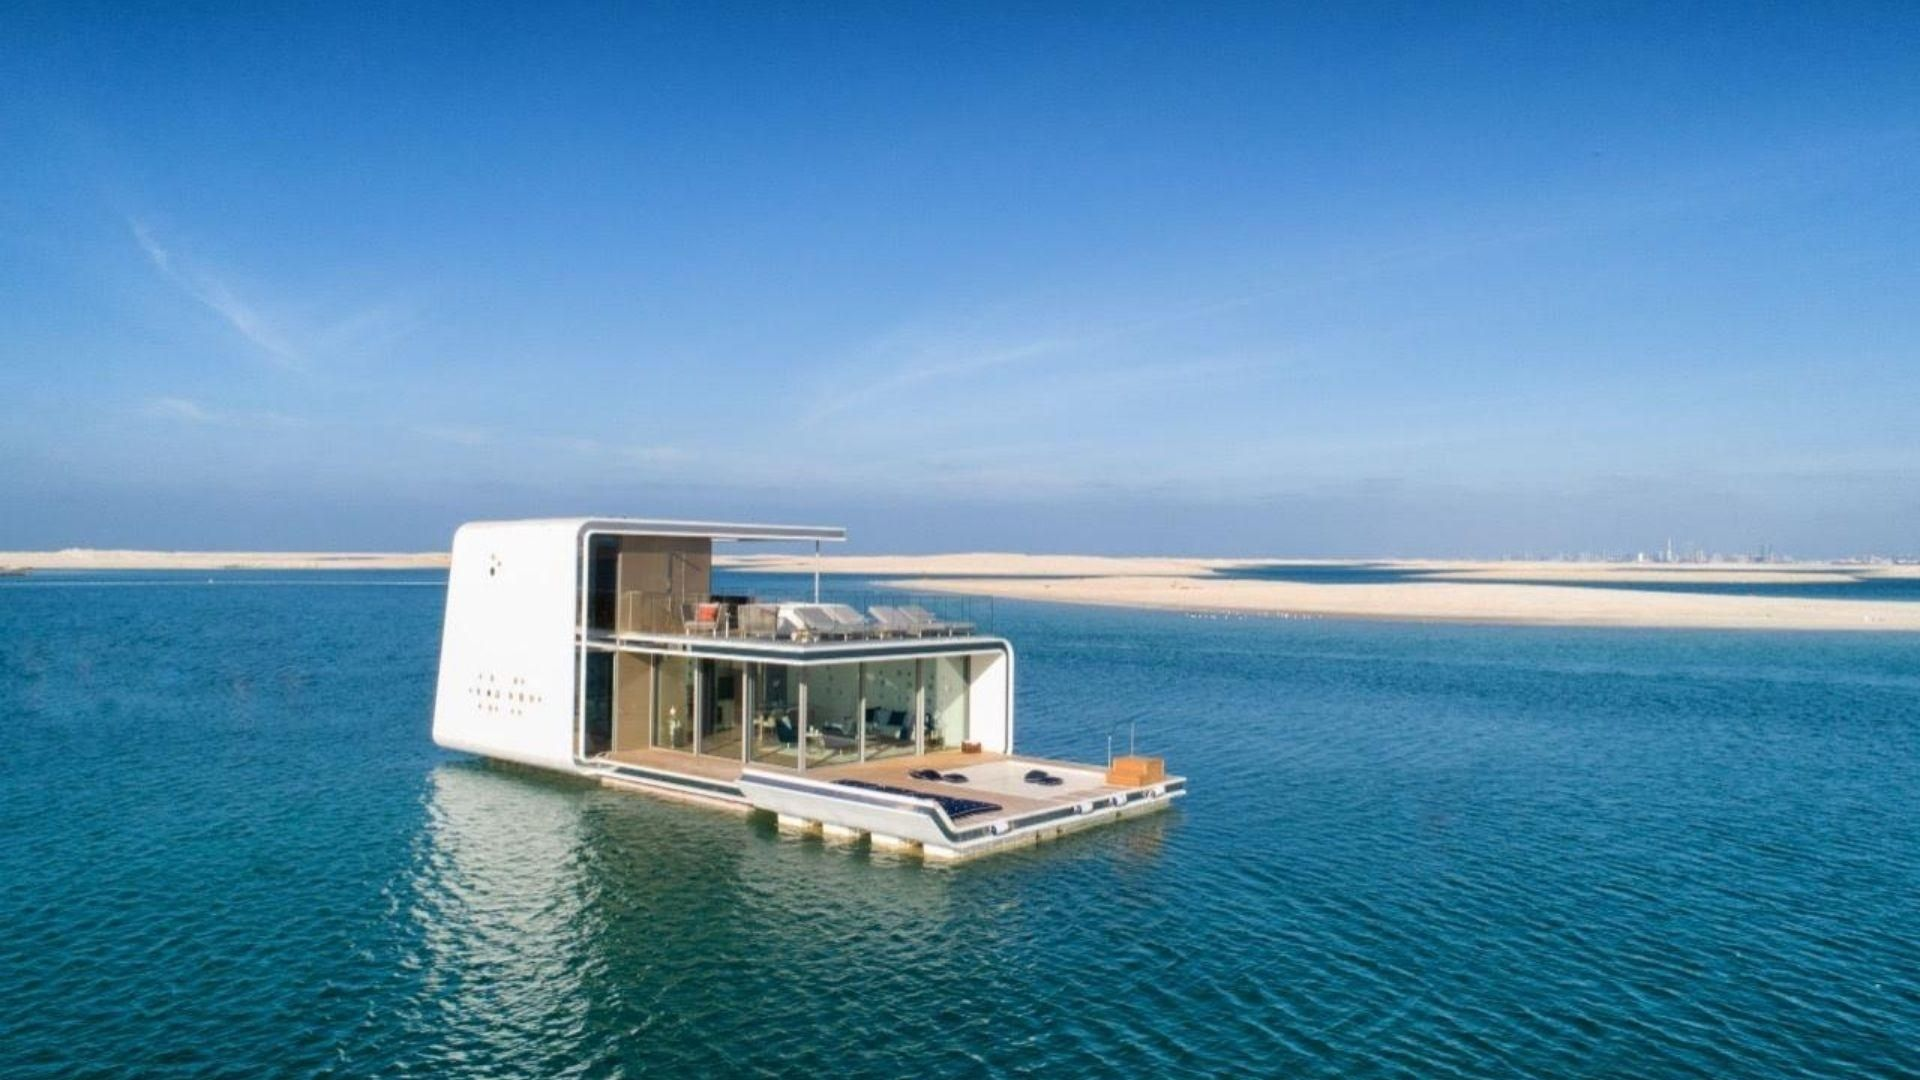 9 - Live like Royalty in These Amazing Luxury Homes in Dubai